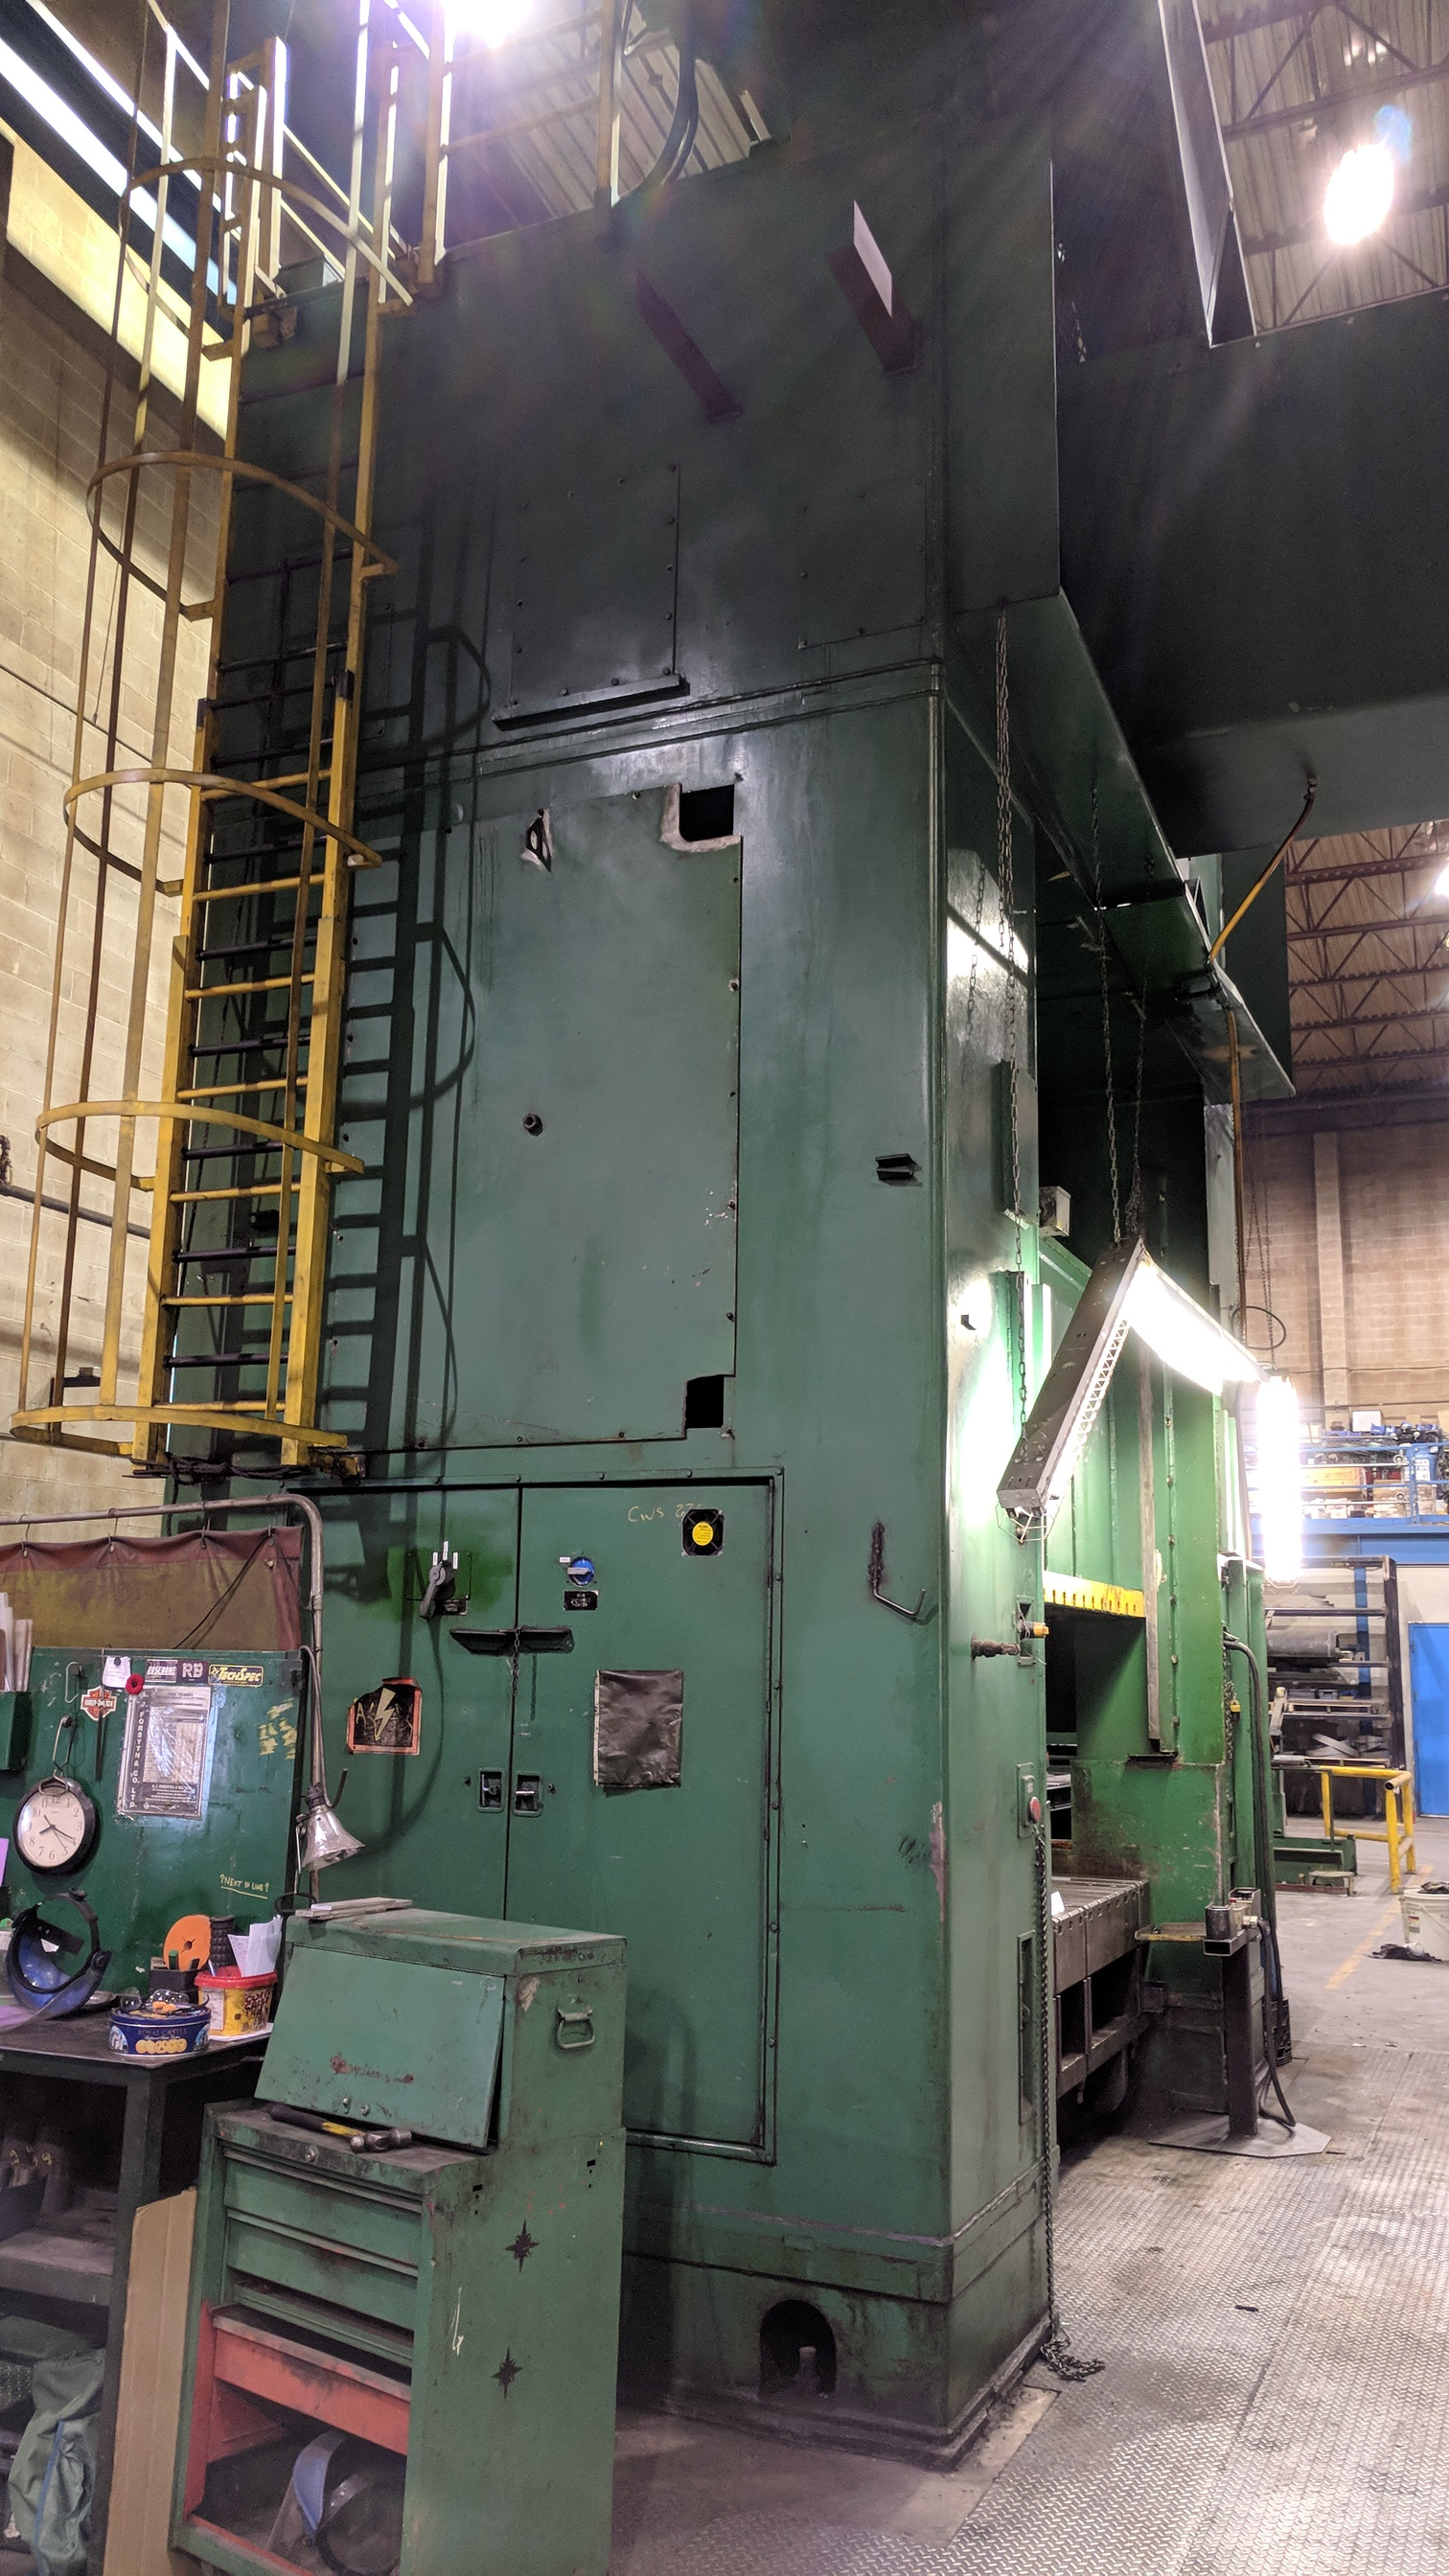 """BLISS SE4-600-108X72 600 TON CAPACITY STRAIGHT SIDE PRESS WITH MAGELIS 2000 PLC CONTROL, 108""""X72"""" - Image 13 of 21"""